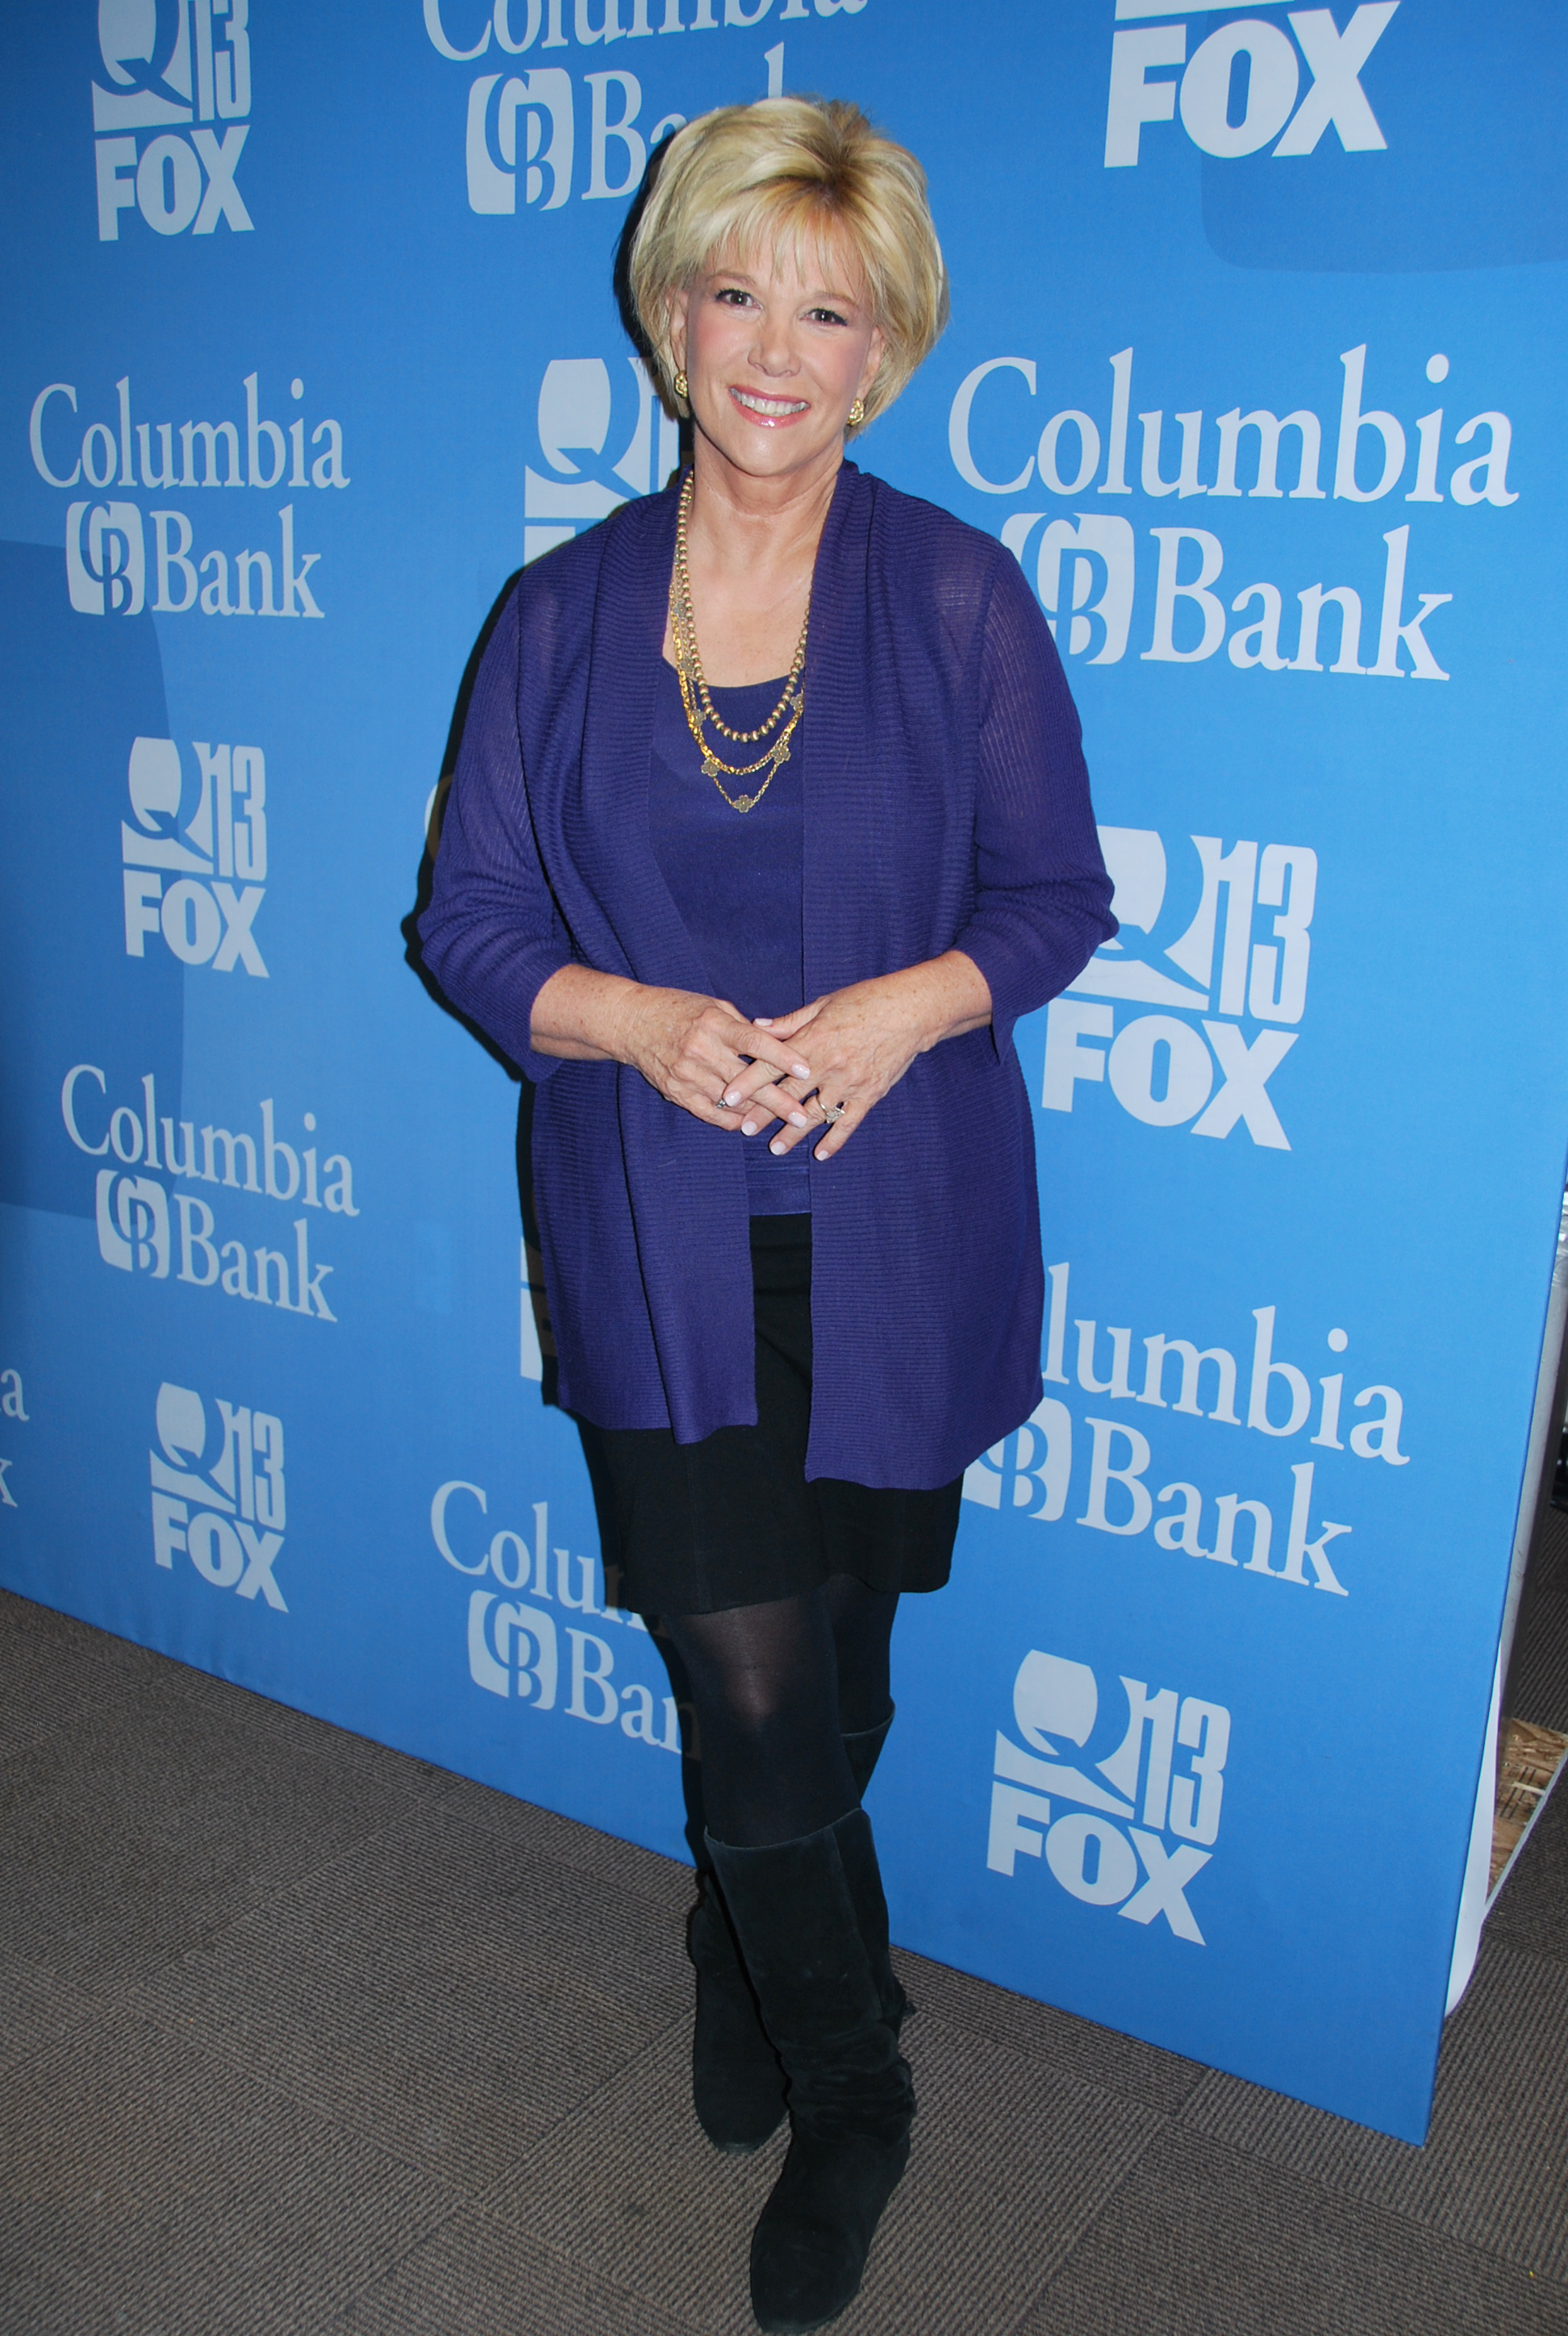 how old is joan lunden